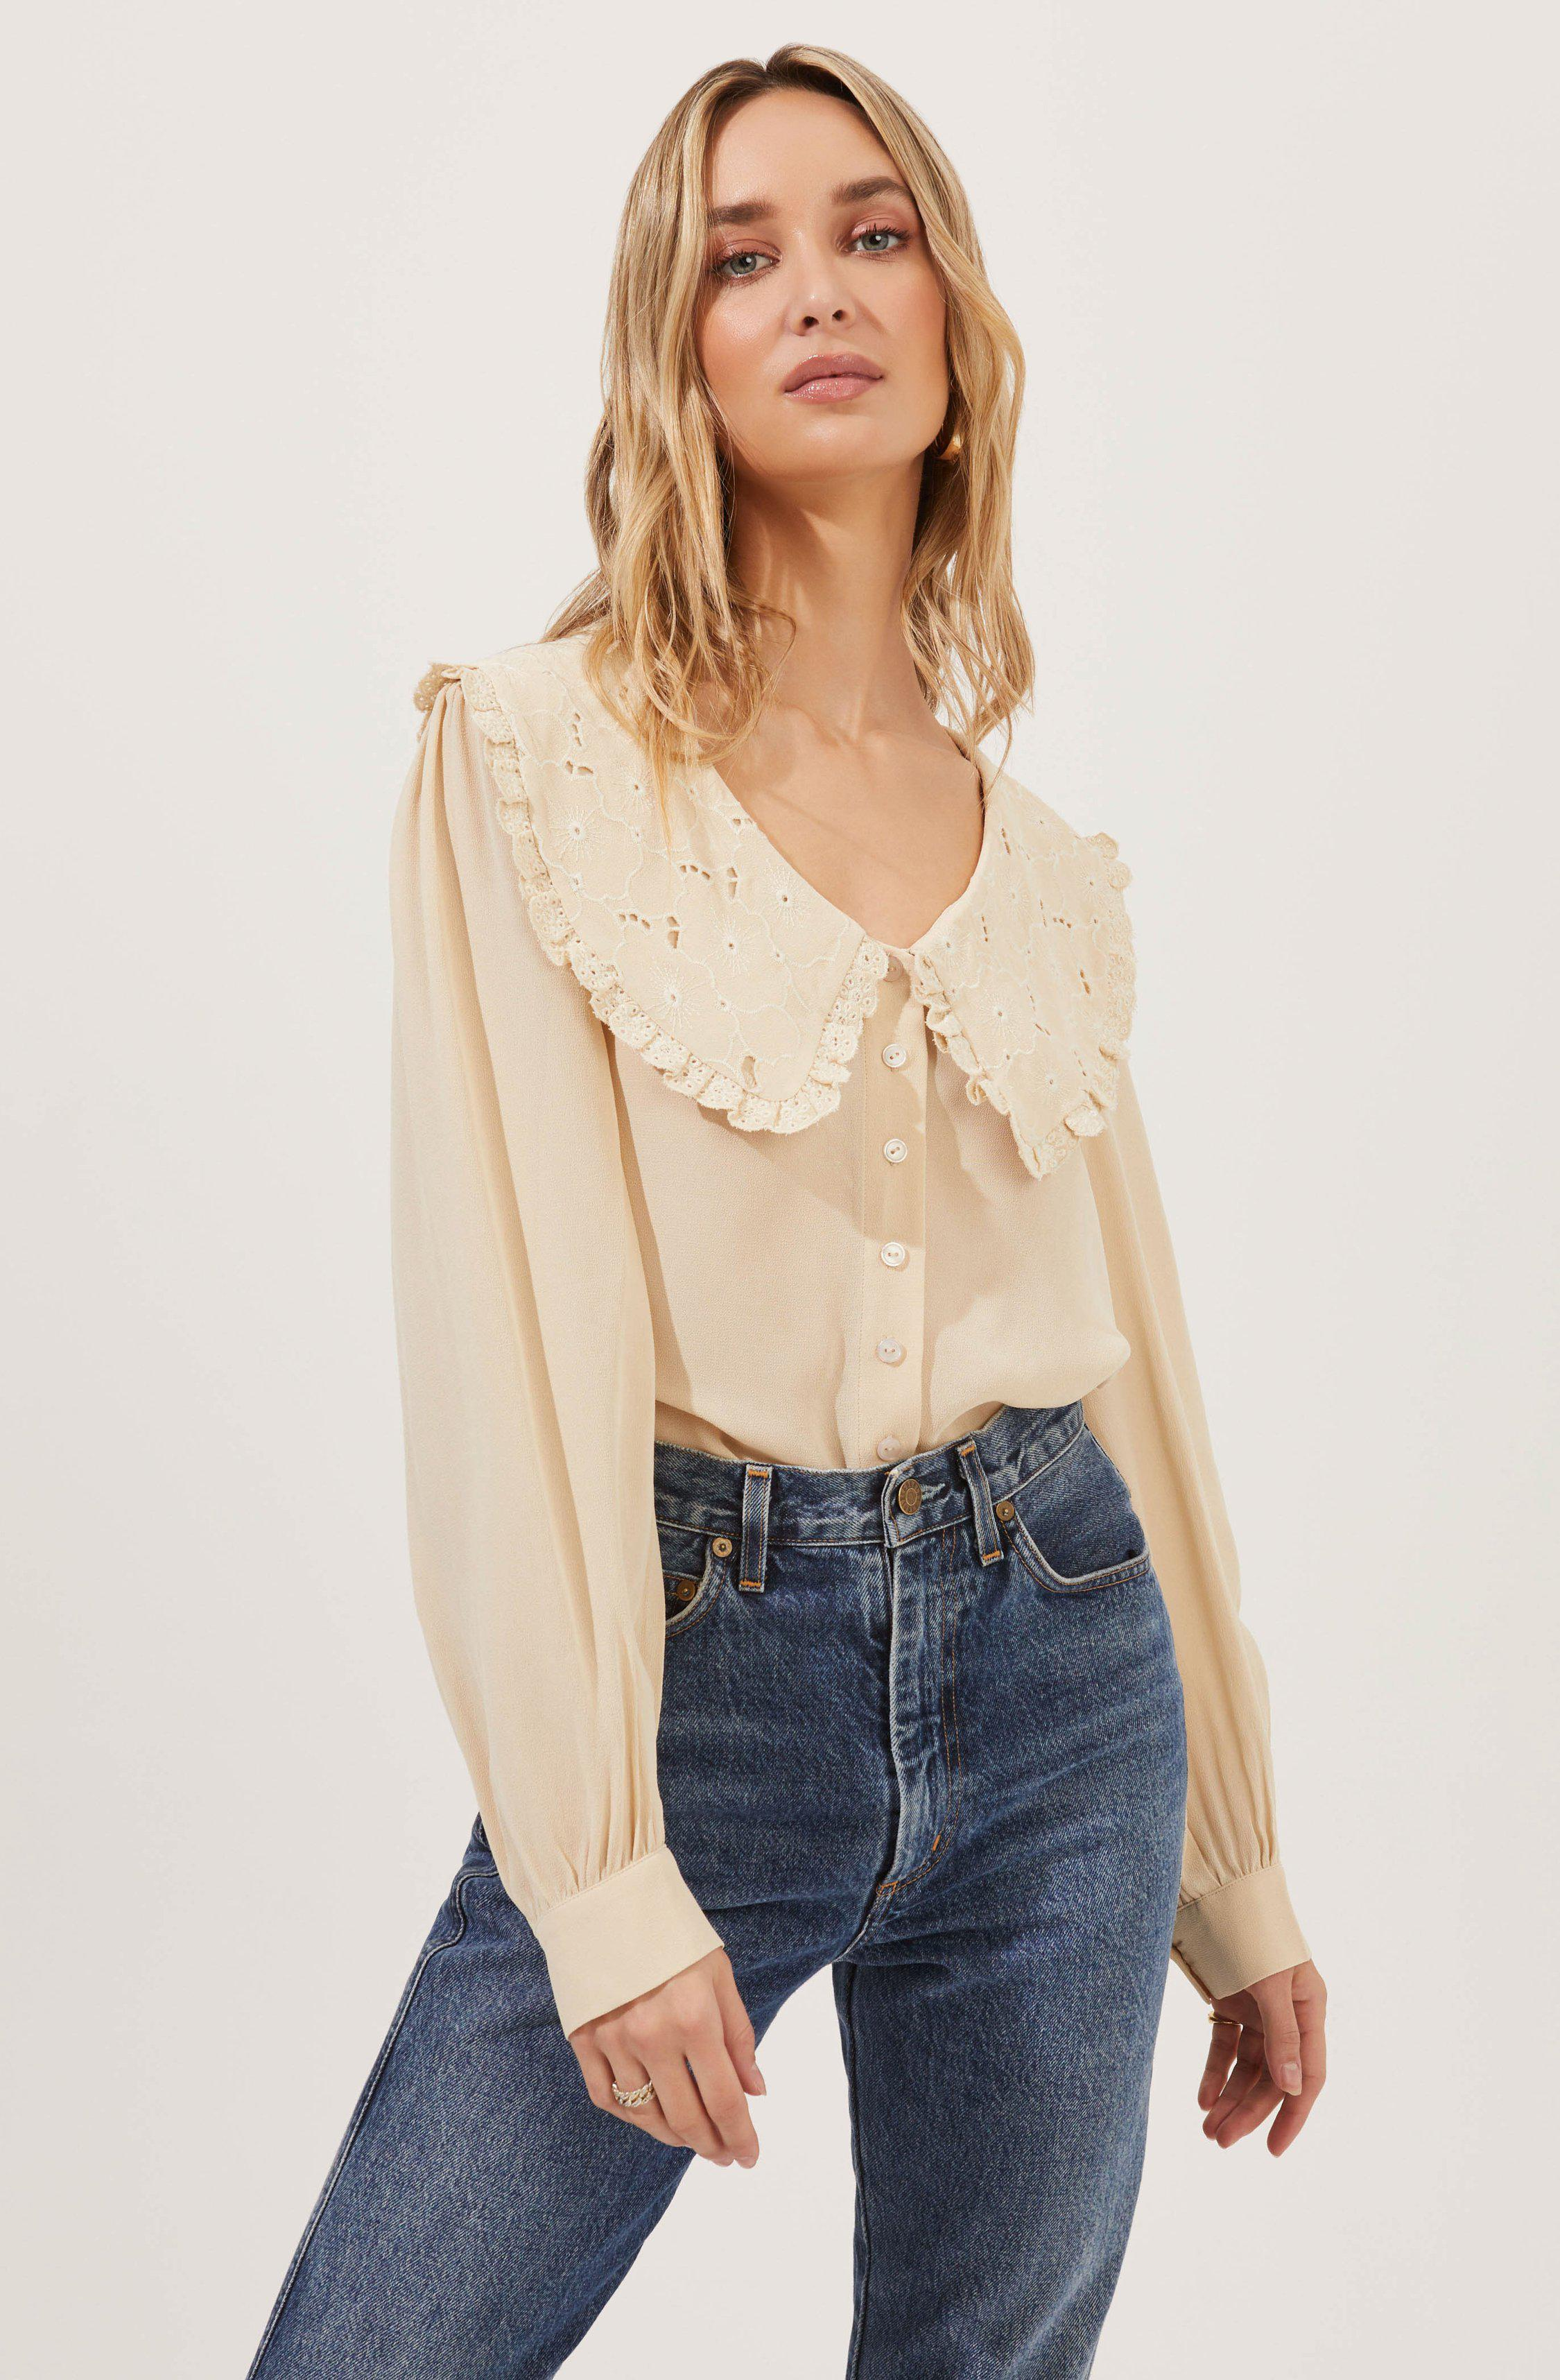 Evelyn Oversized Frilly Collar Button Down Top